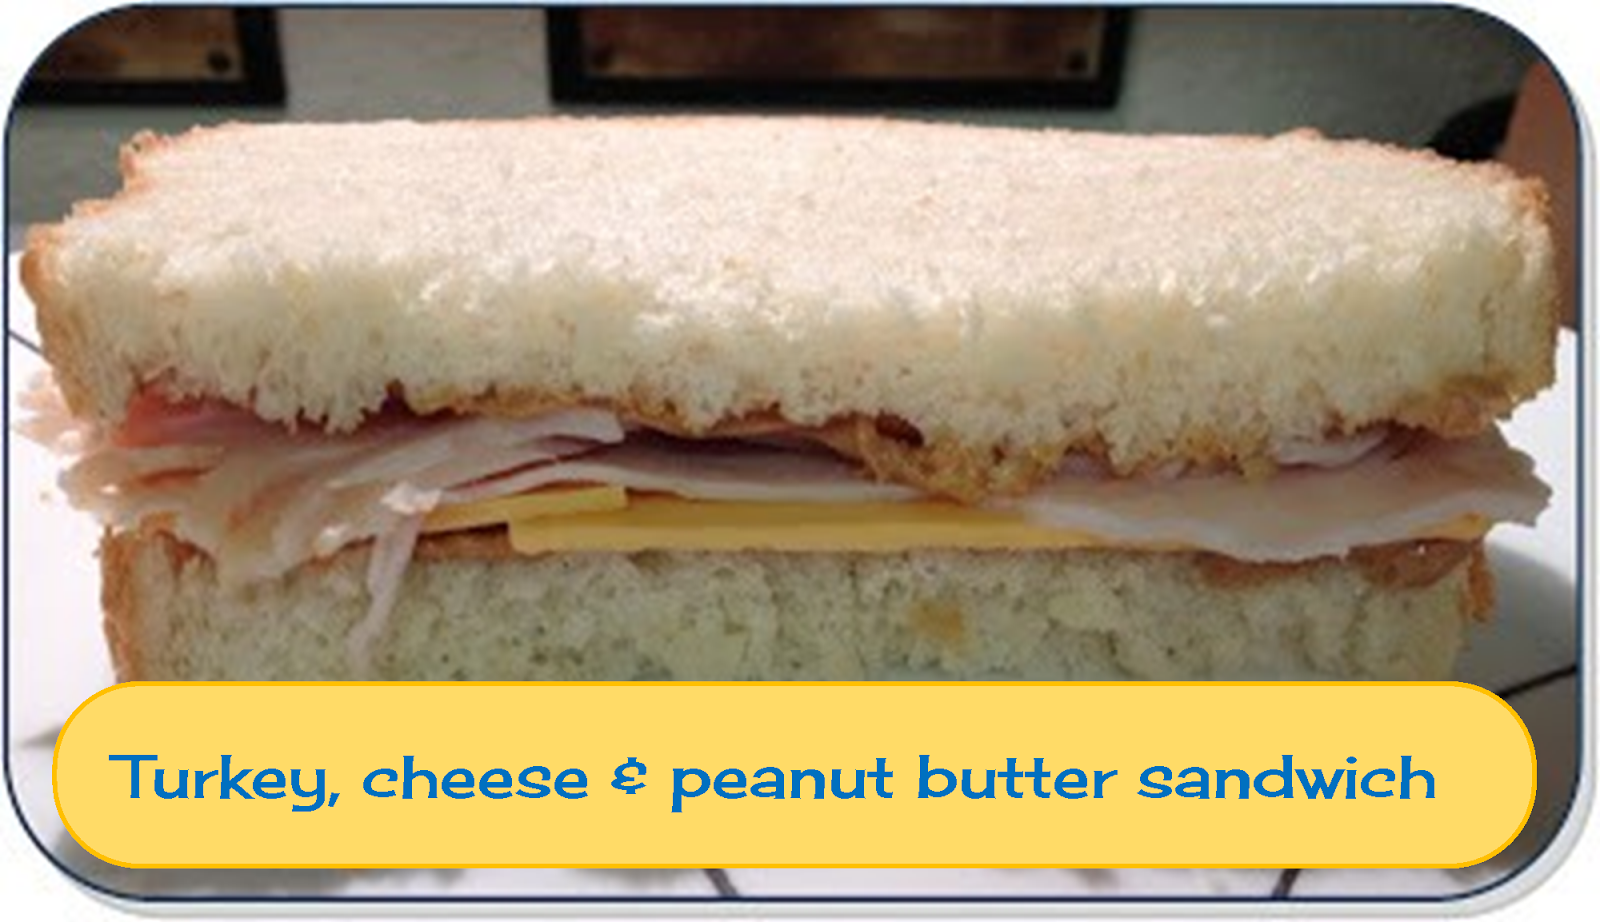 Turkey, cheese & peanut butter sandwich #sandwich #yum